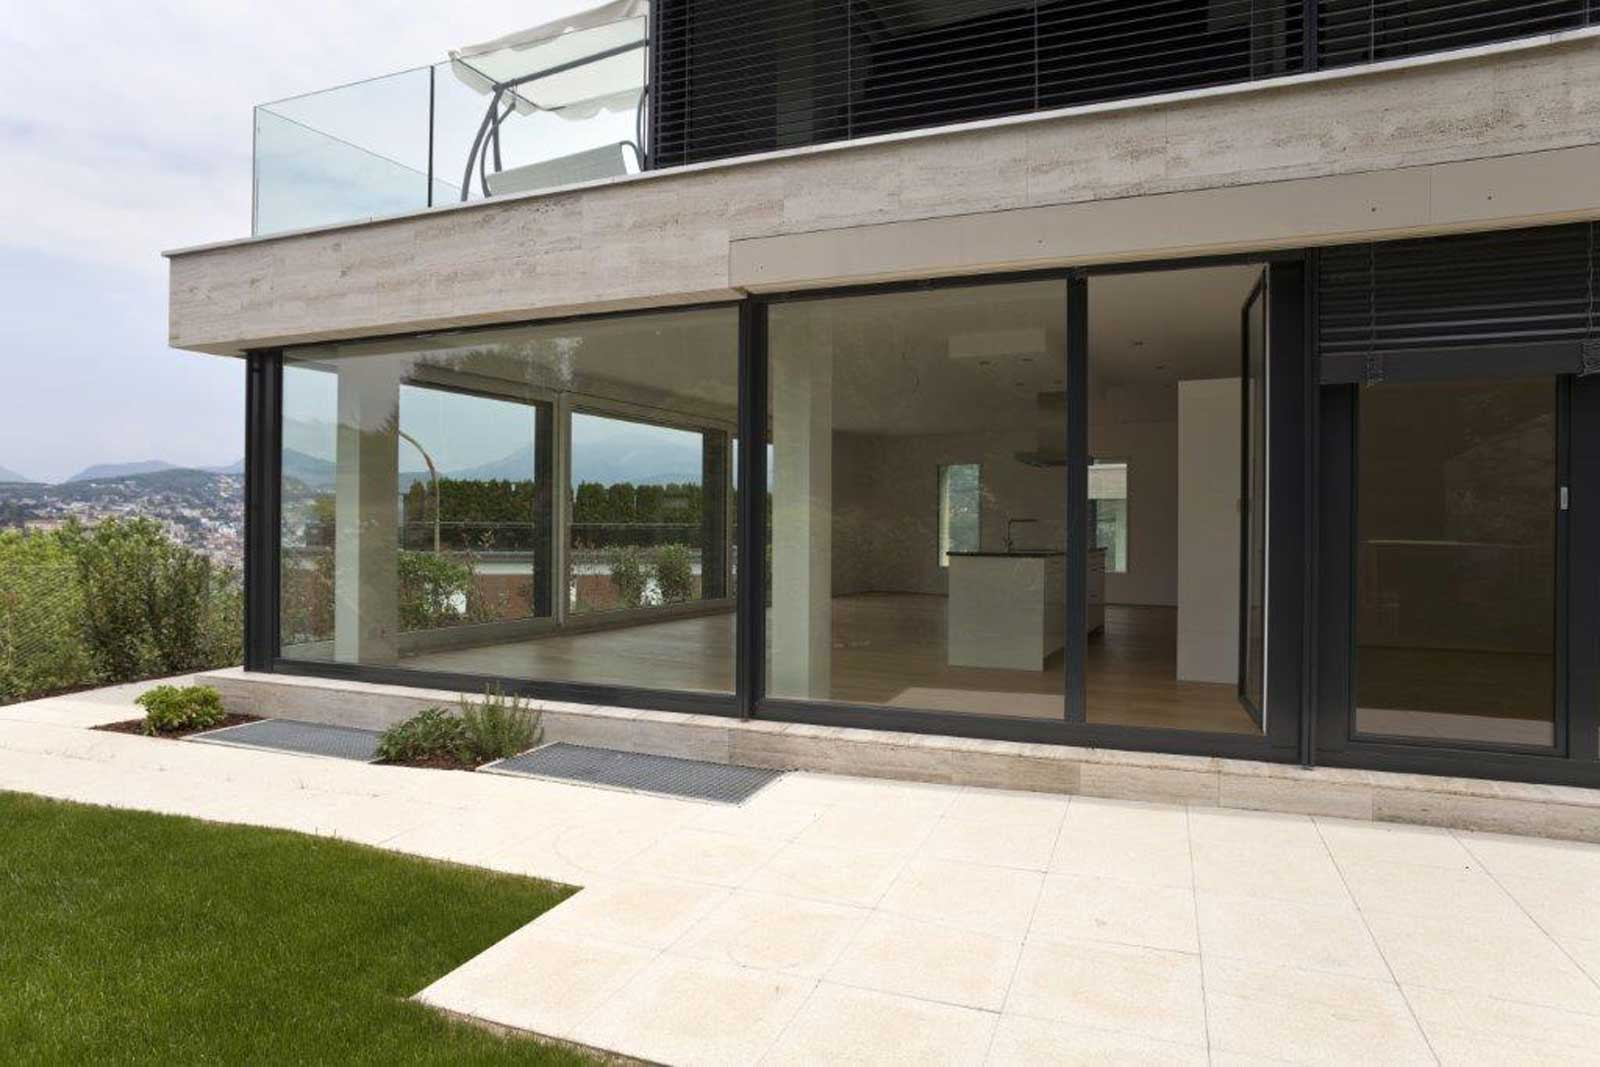 Glass films from Sorenos as sun protection, against UV rays, to save energy